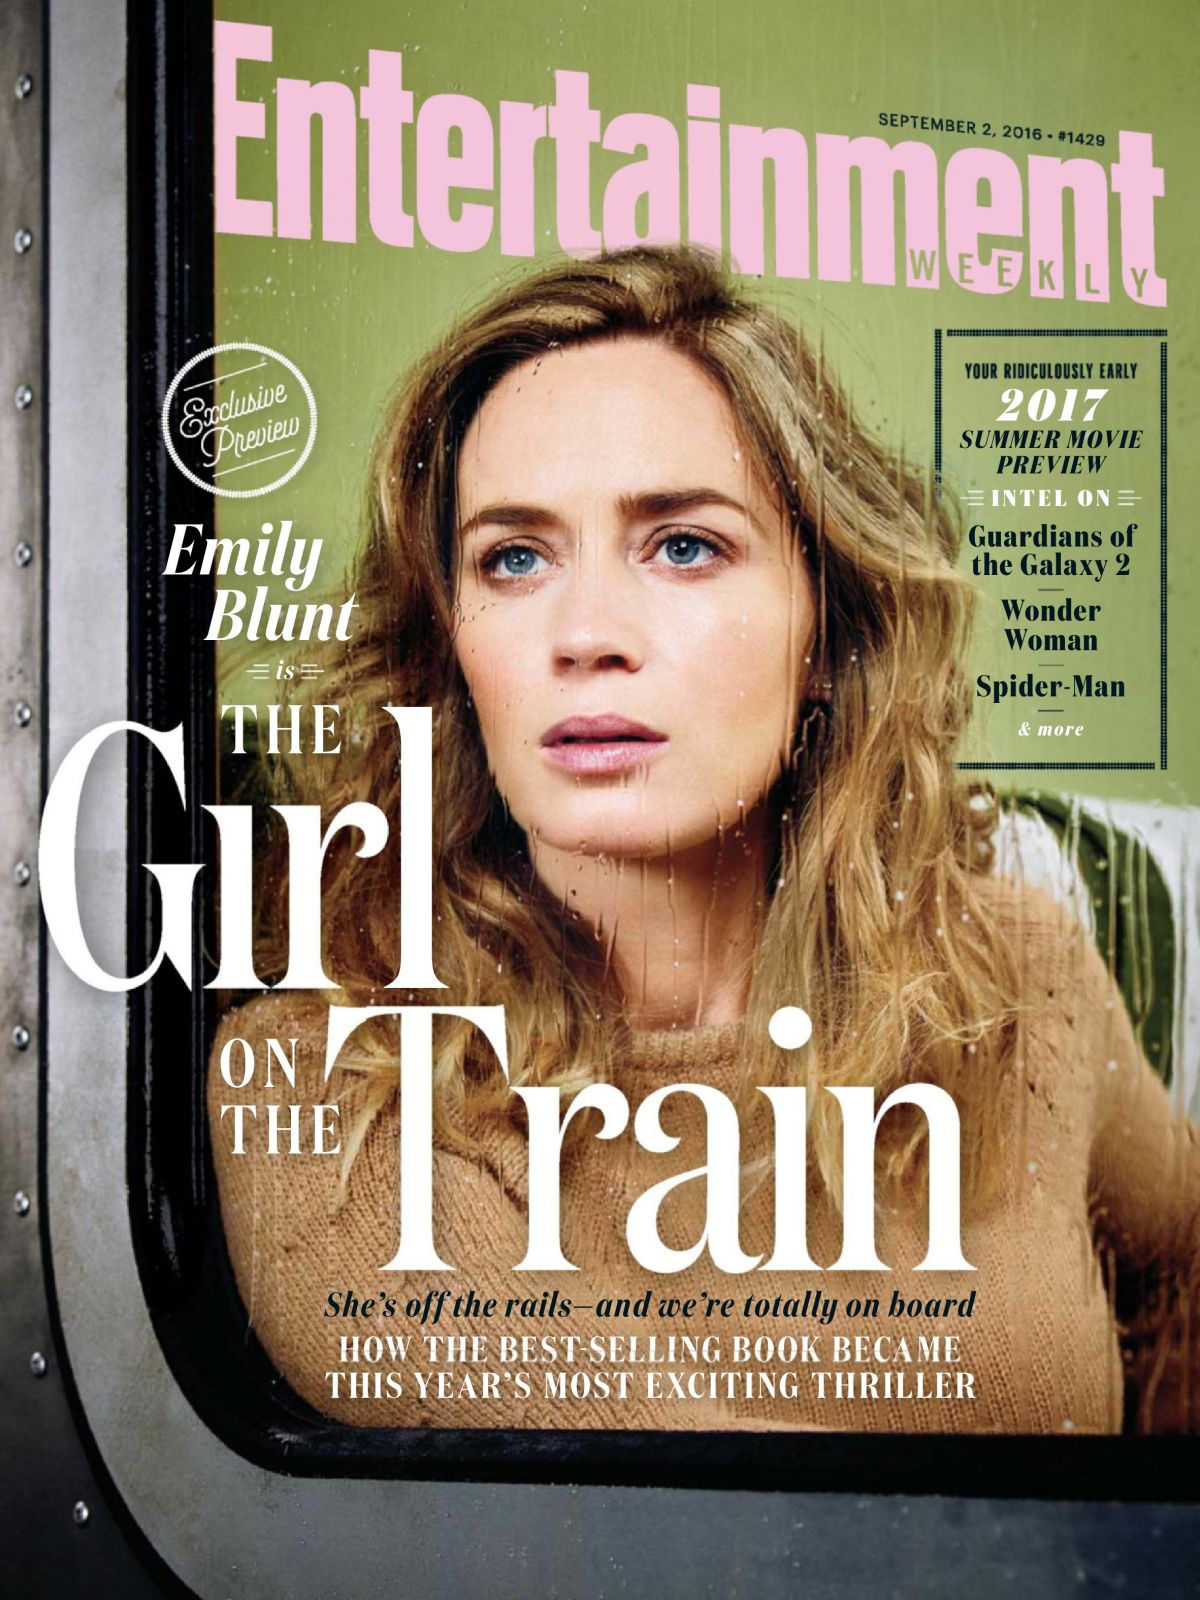 EMILY BLUNT in Entertainment Weekly Magazine, September 2016 Issue